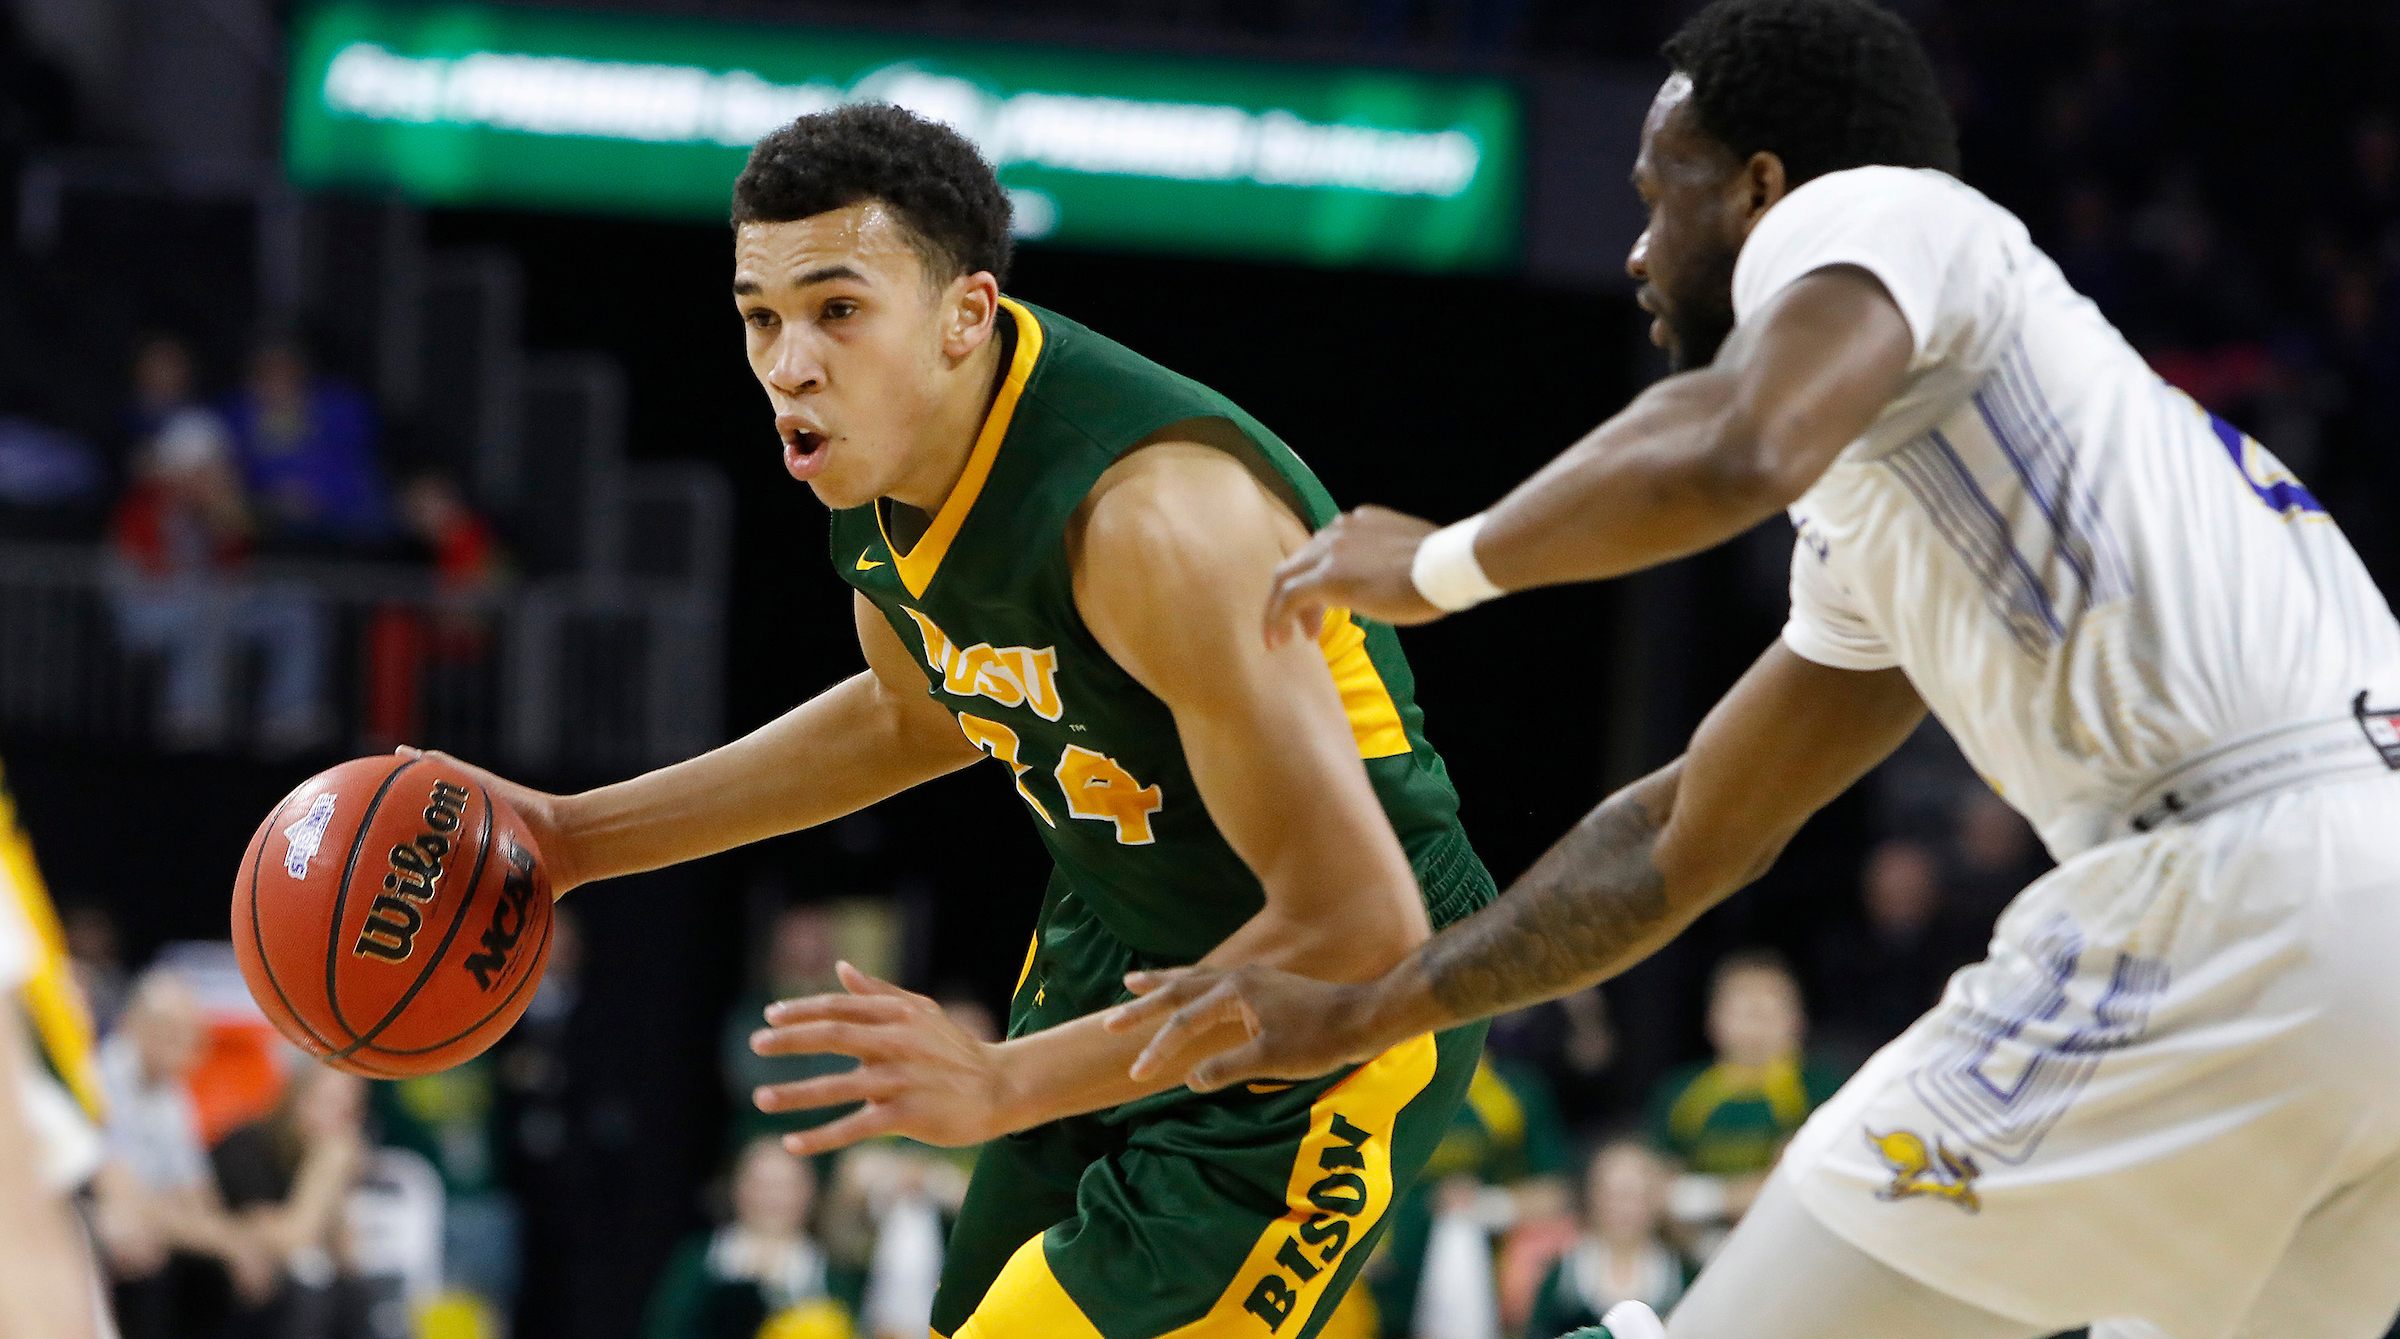 Image result for tyson ward ndsu""